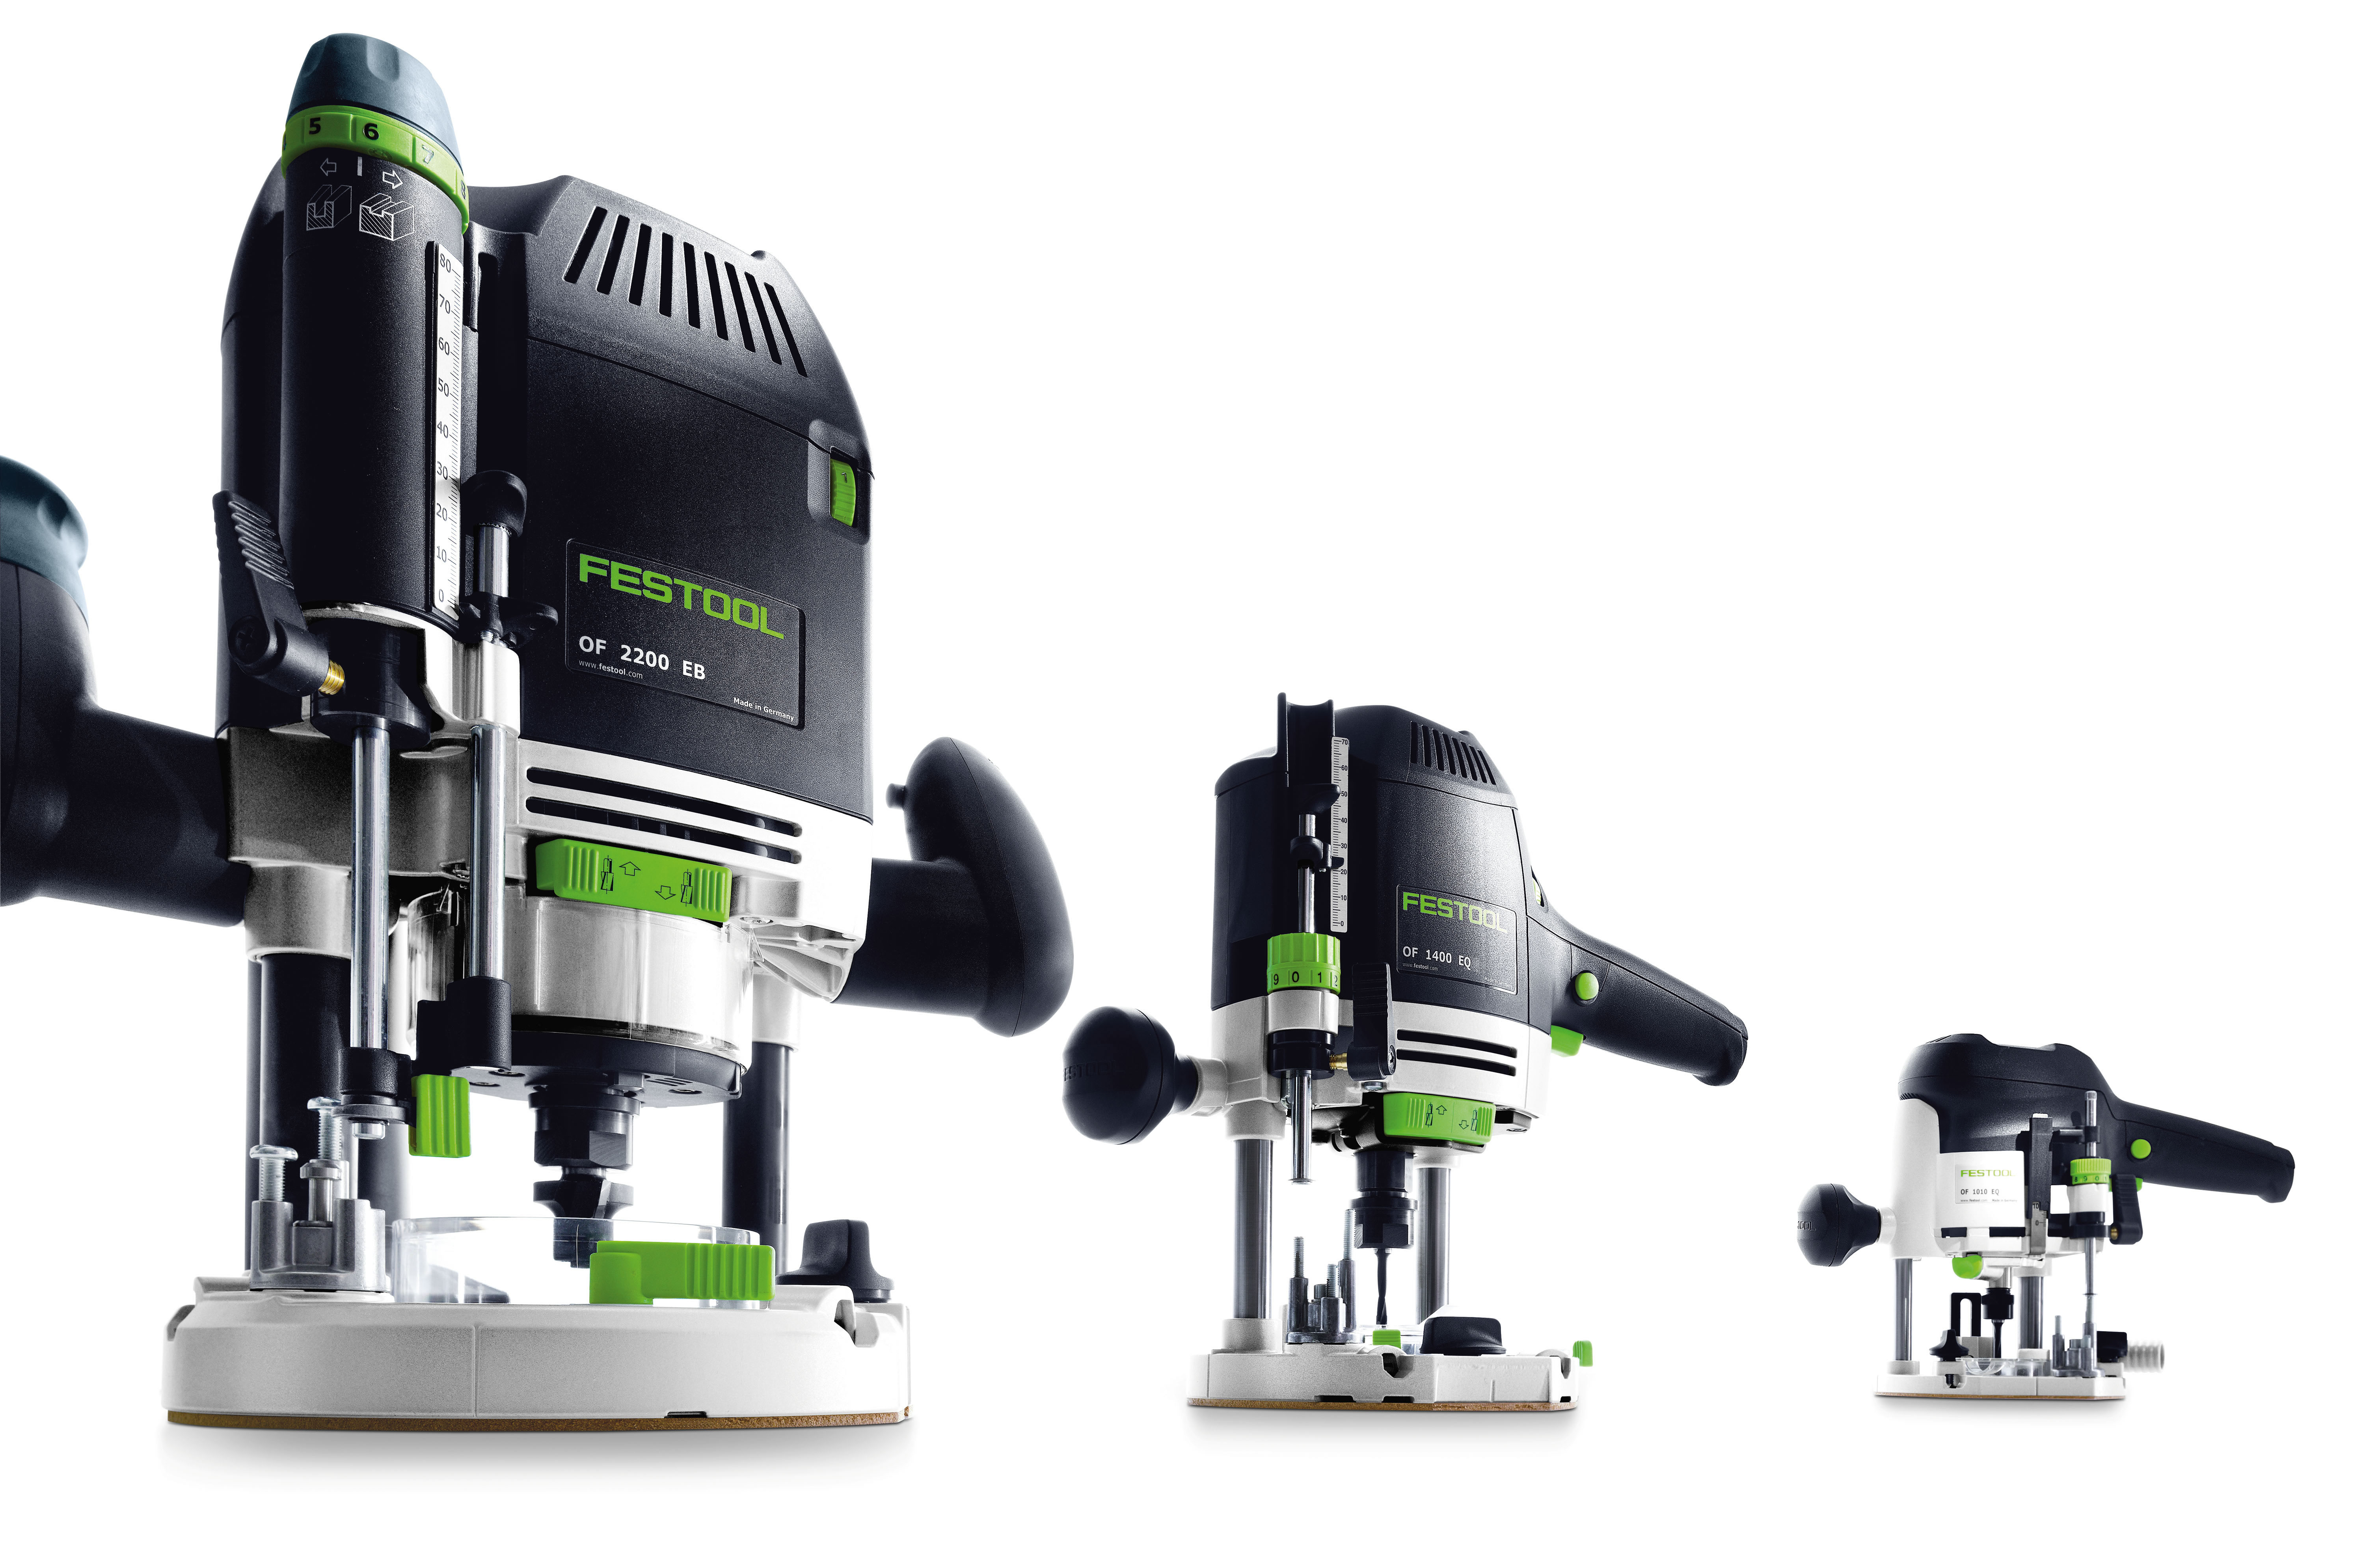 Festool Router Family